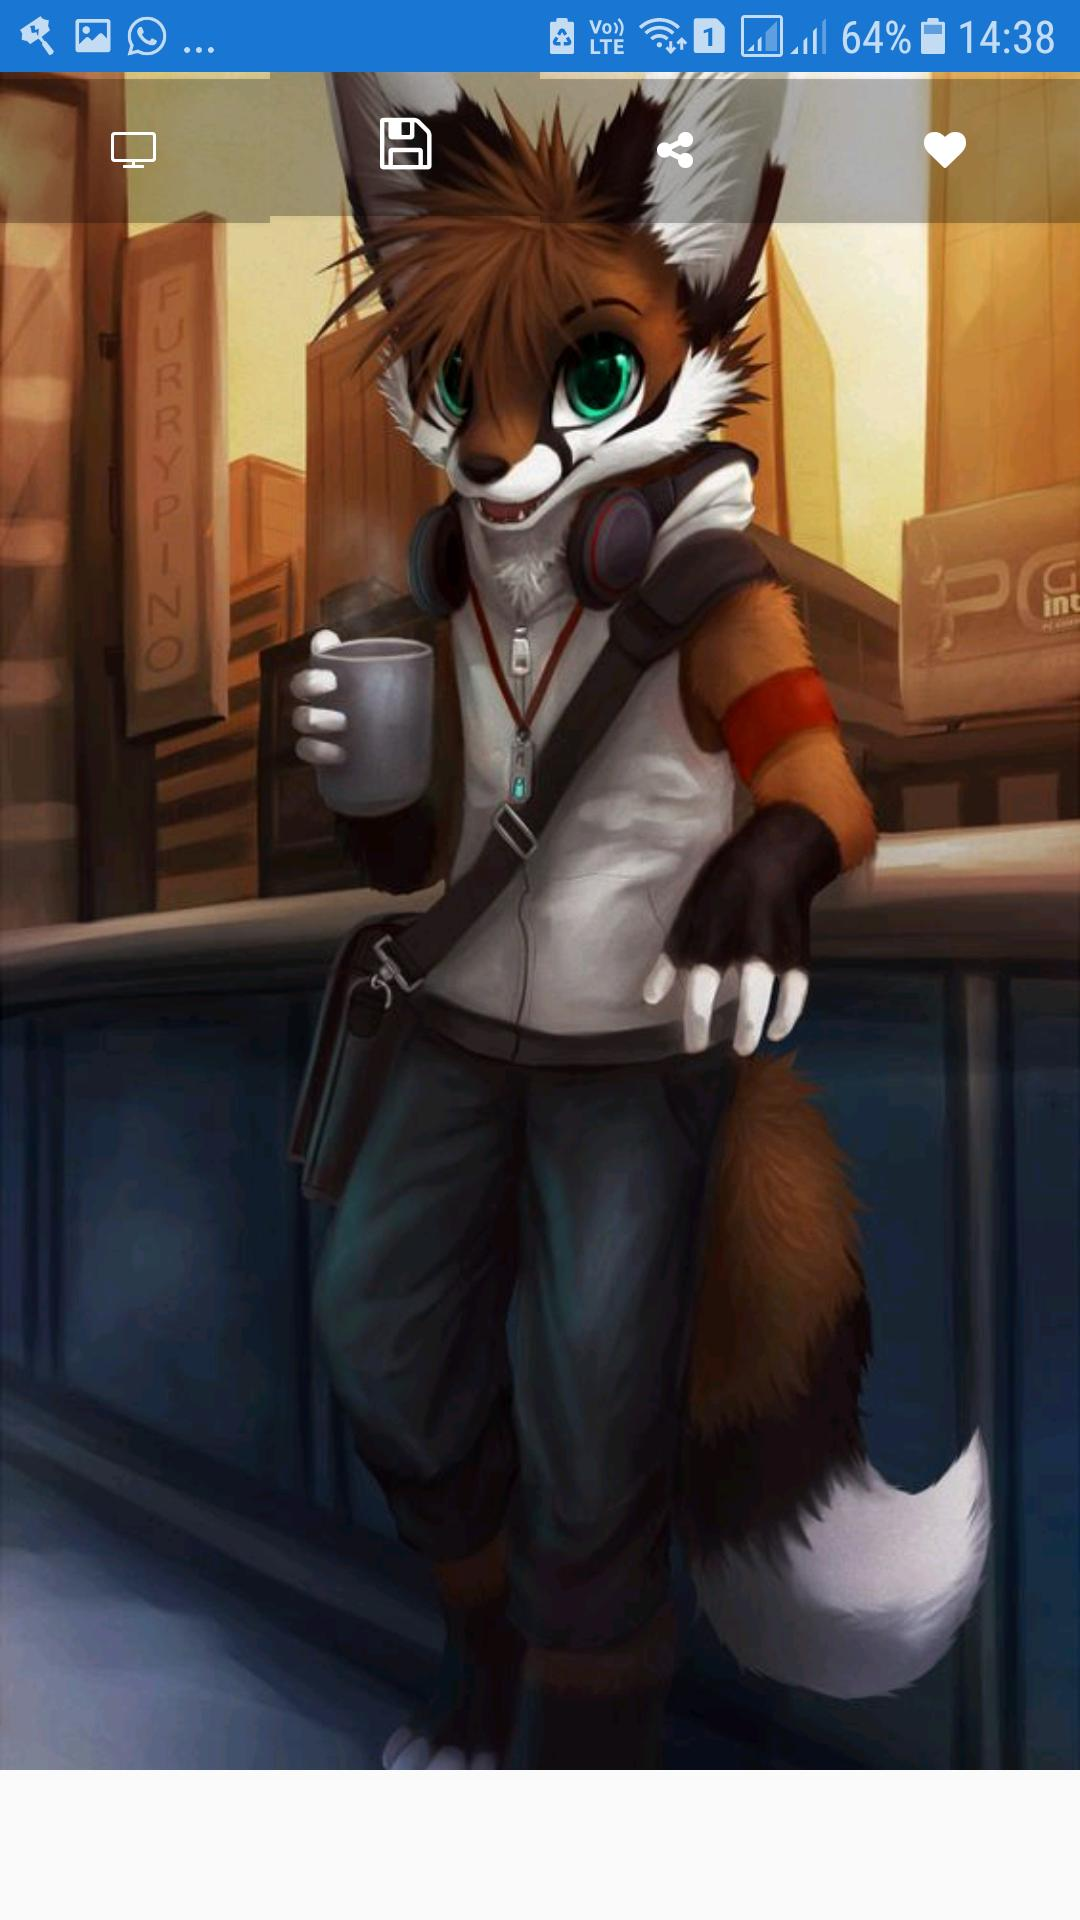 Furry Wallpapers Hd For Android Apk Download